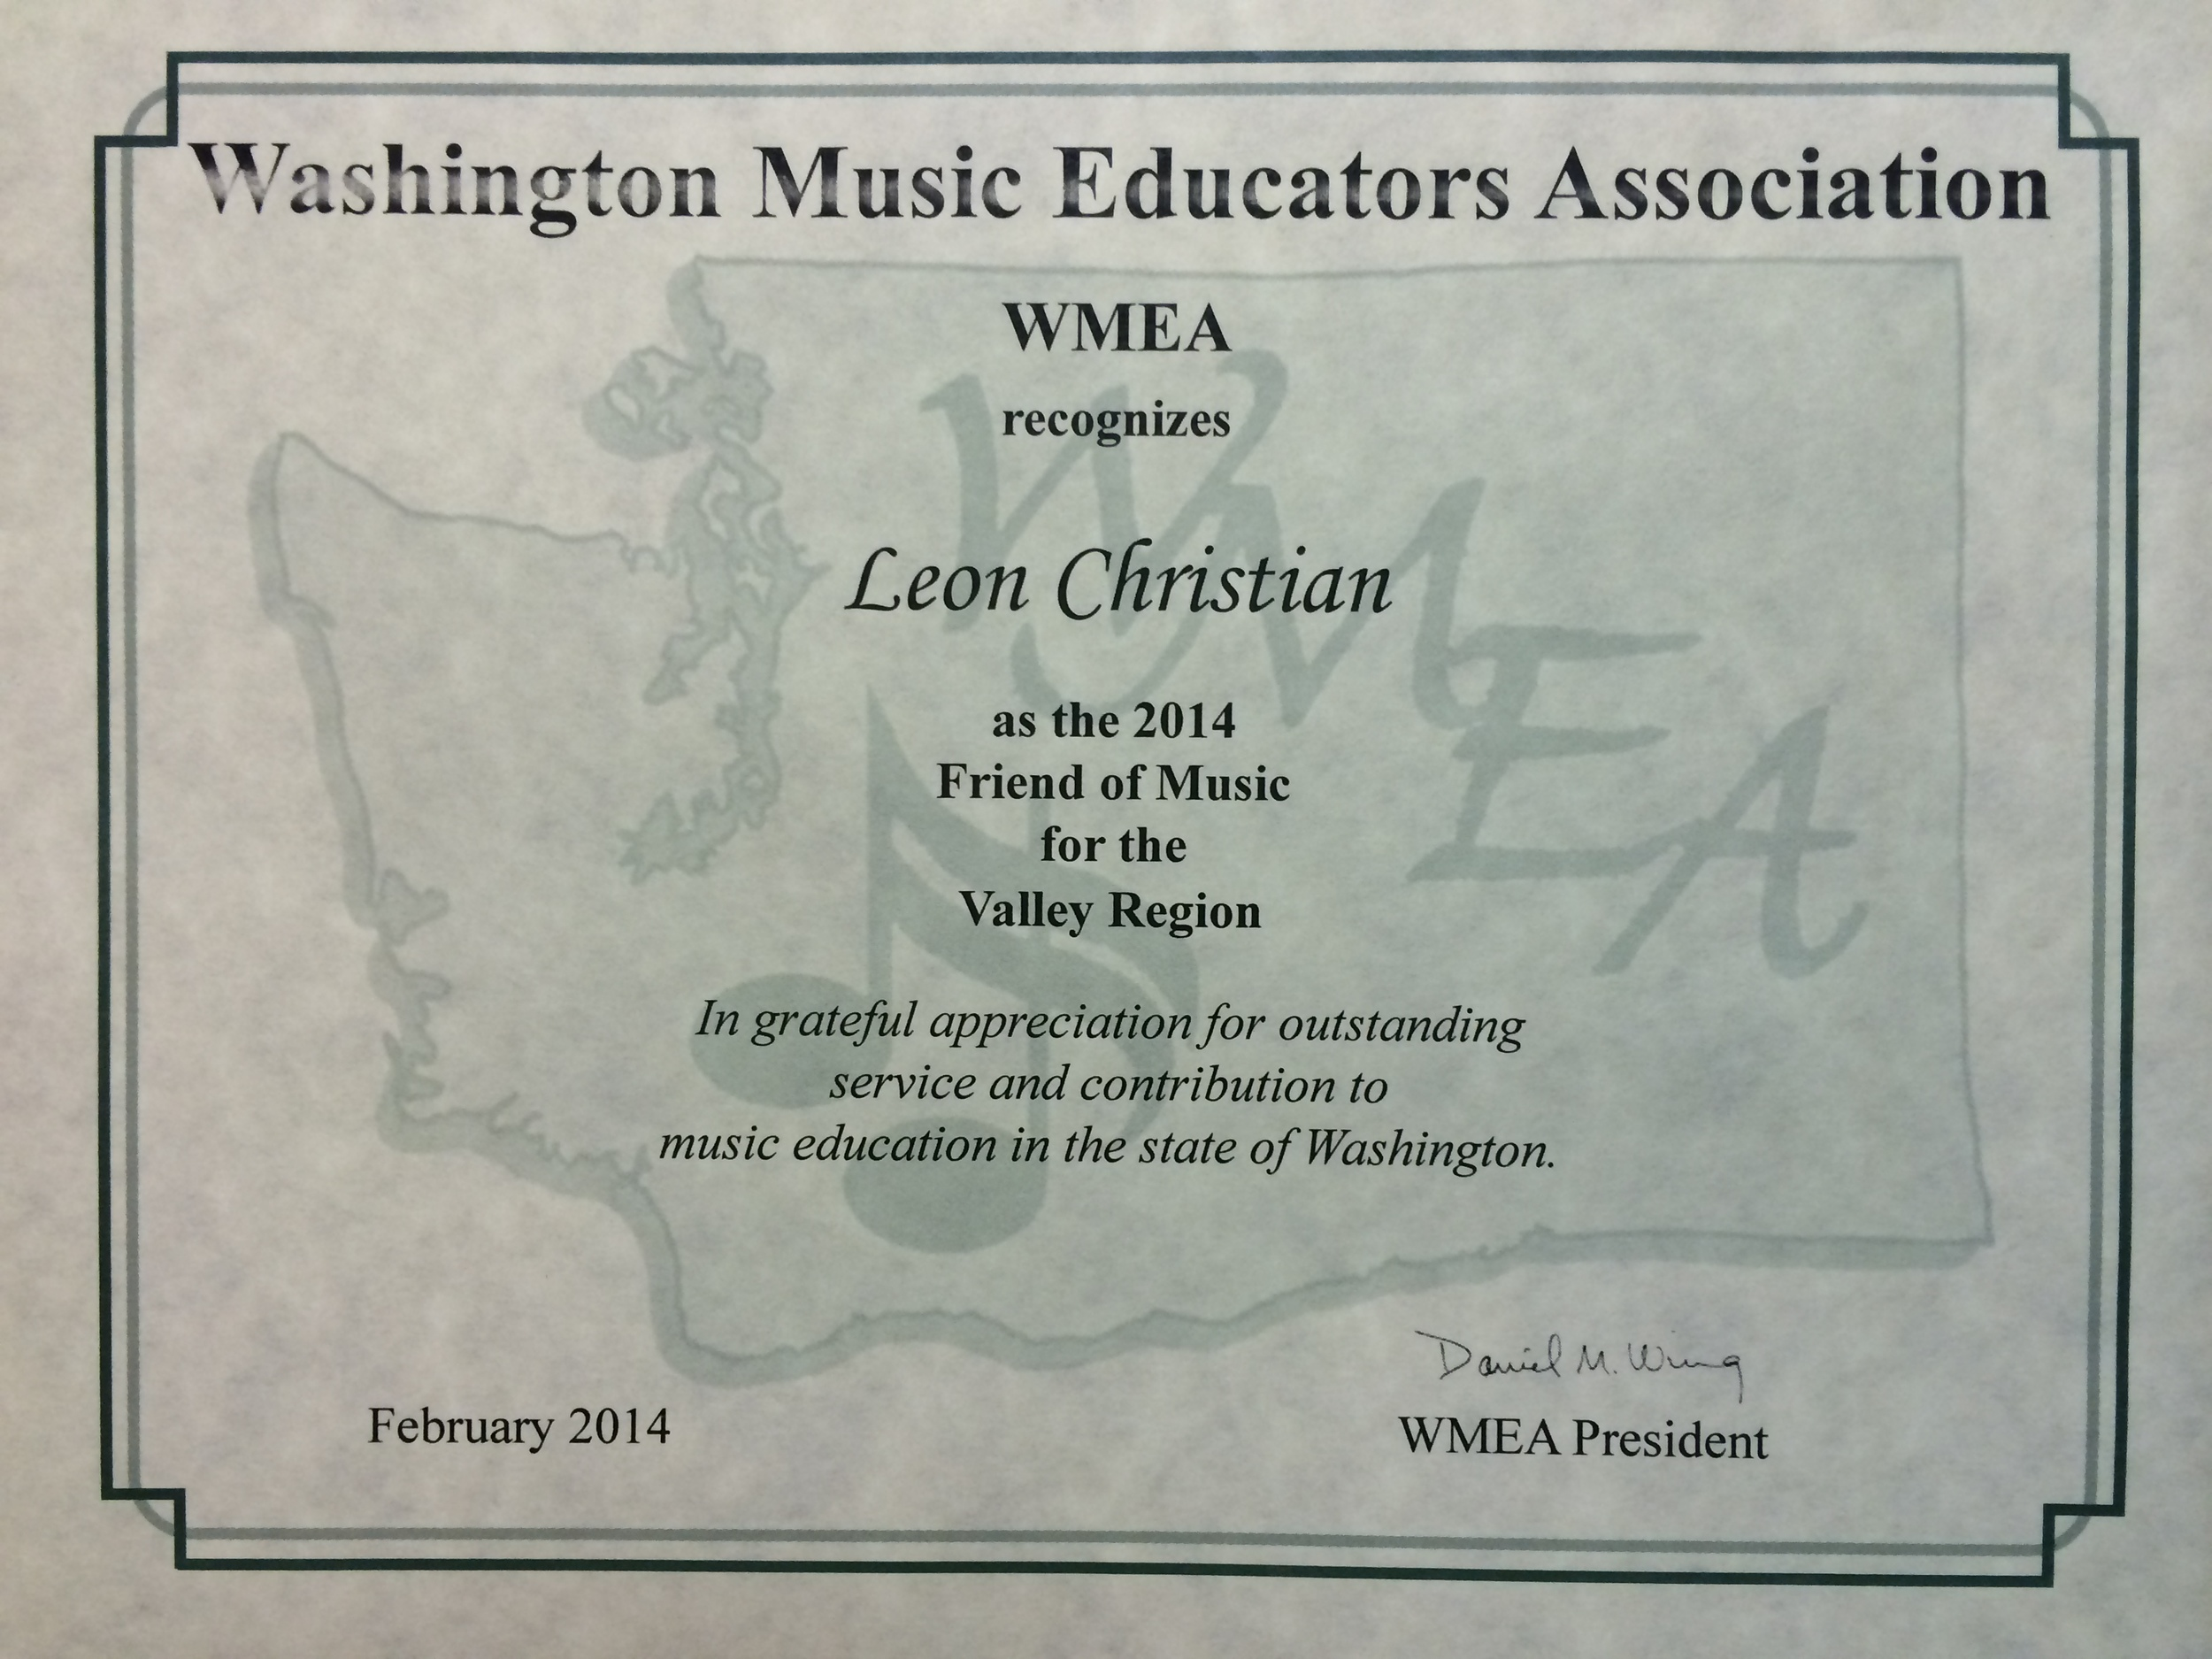 Leon-Christian-Guitar-2014-WMEA-Friend-of-Music-Award-01